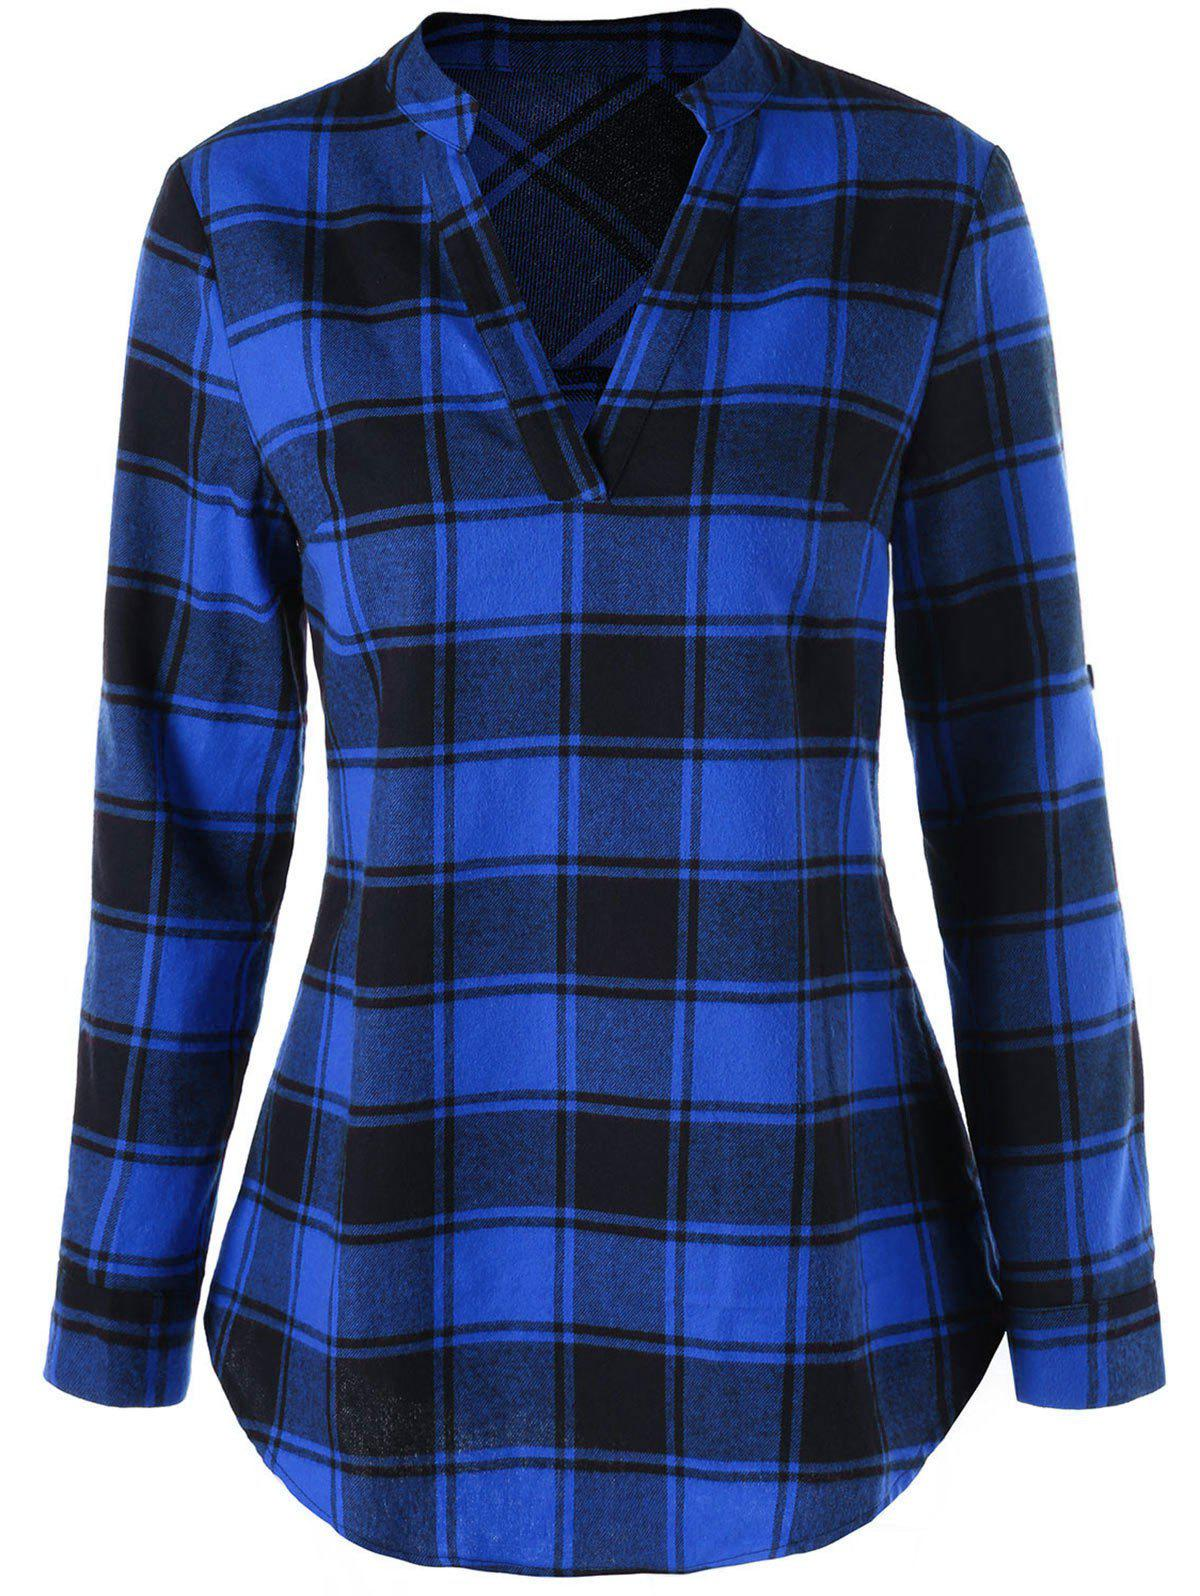 Split Neck Curved Hem Plaid BlouseWOMEN<br><br>Size: 2XL; Color: SAPPHIRE BLUE + BLACK; Occasion: Casual; Style: Casual; Material: Rayon; Shirt Length: Long; Sleeve Length: Full; Collar: V-Neck; Pattern Type: Plaid; Season: Fall,Spring; Weight: 0.2700kg; Package Contents: 1 x Blouse;